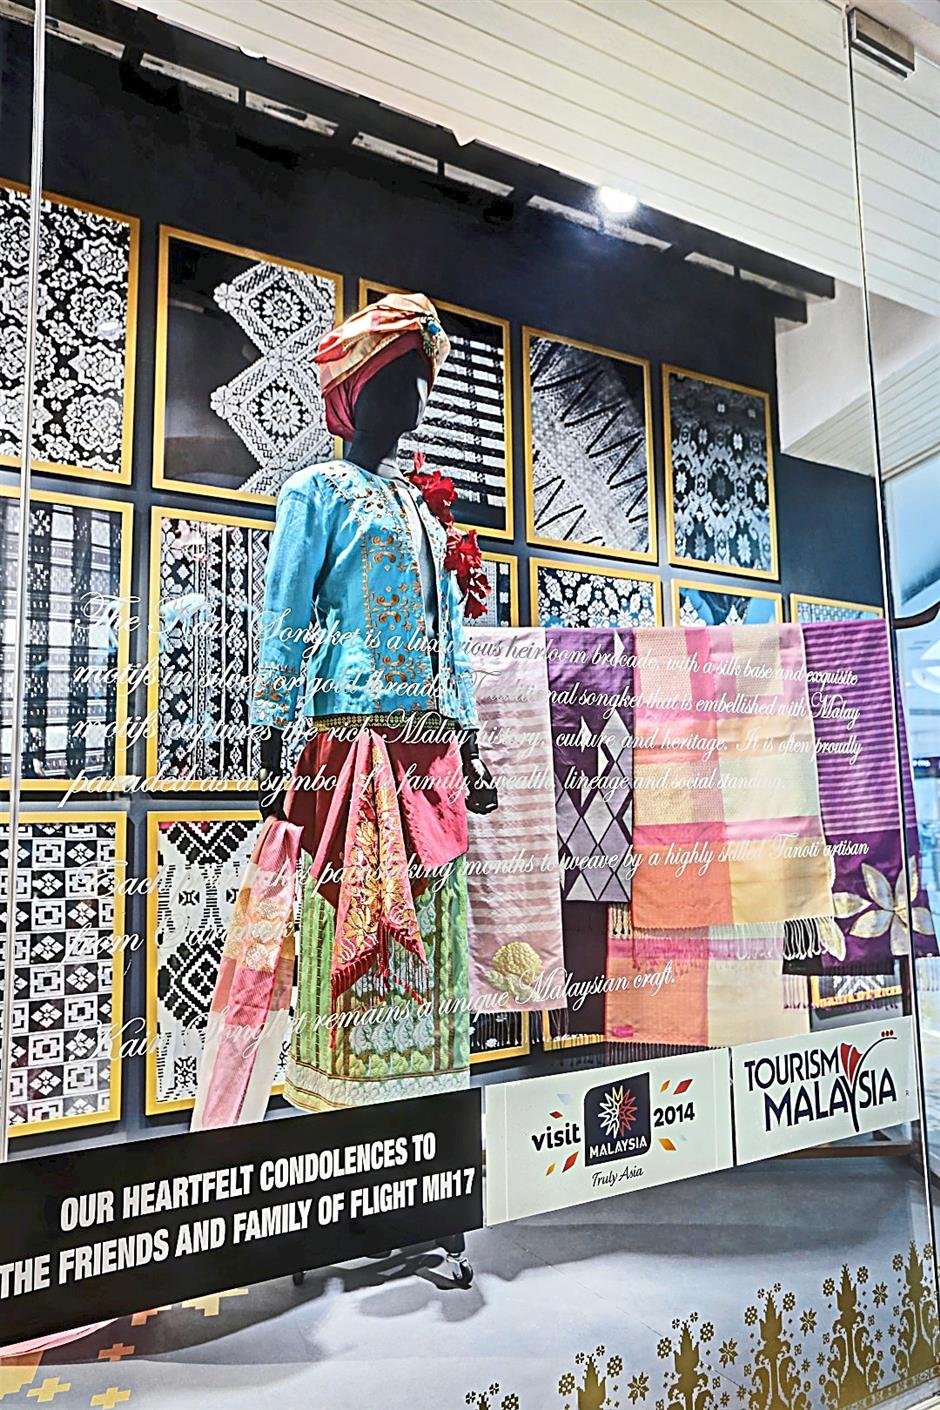 Fashionable way to promote tourism | The Star Online